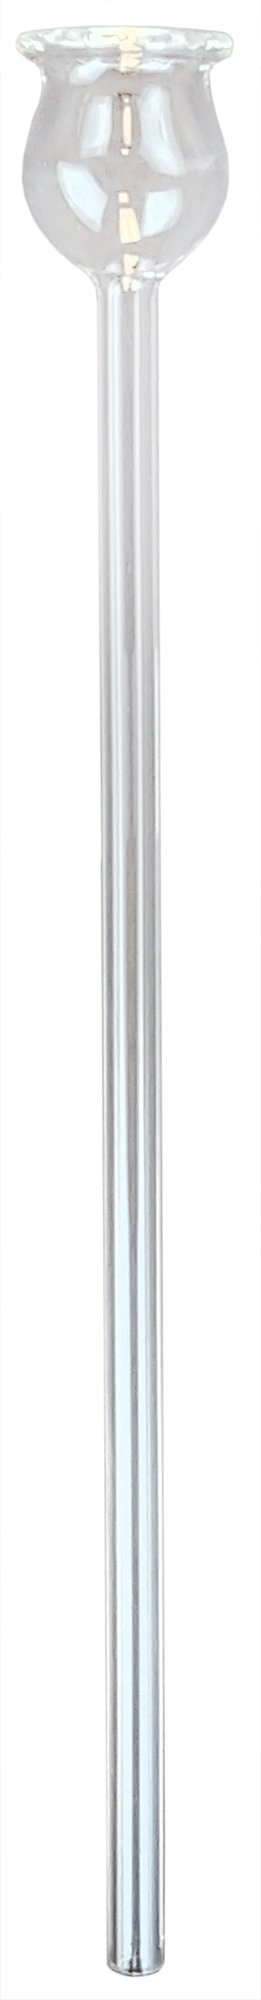 GSC International 604-2-10 Semi-Micro Thistle Tube (Pack of 10) by GSC International